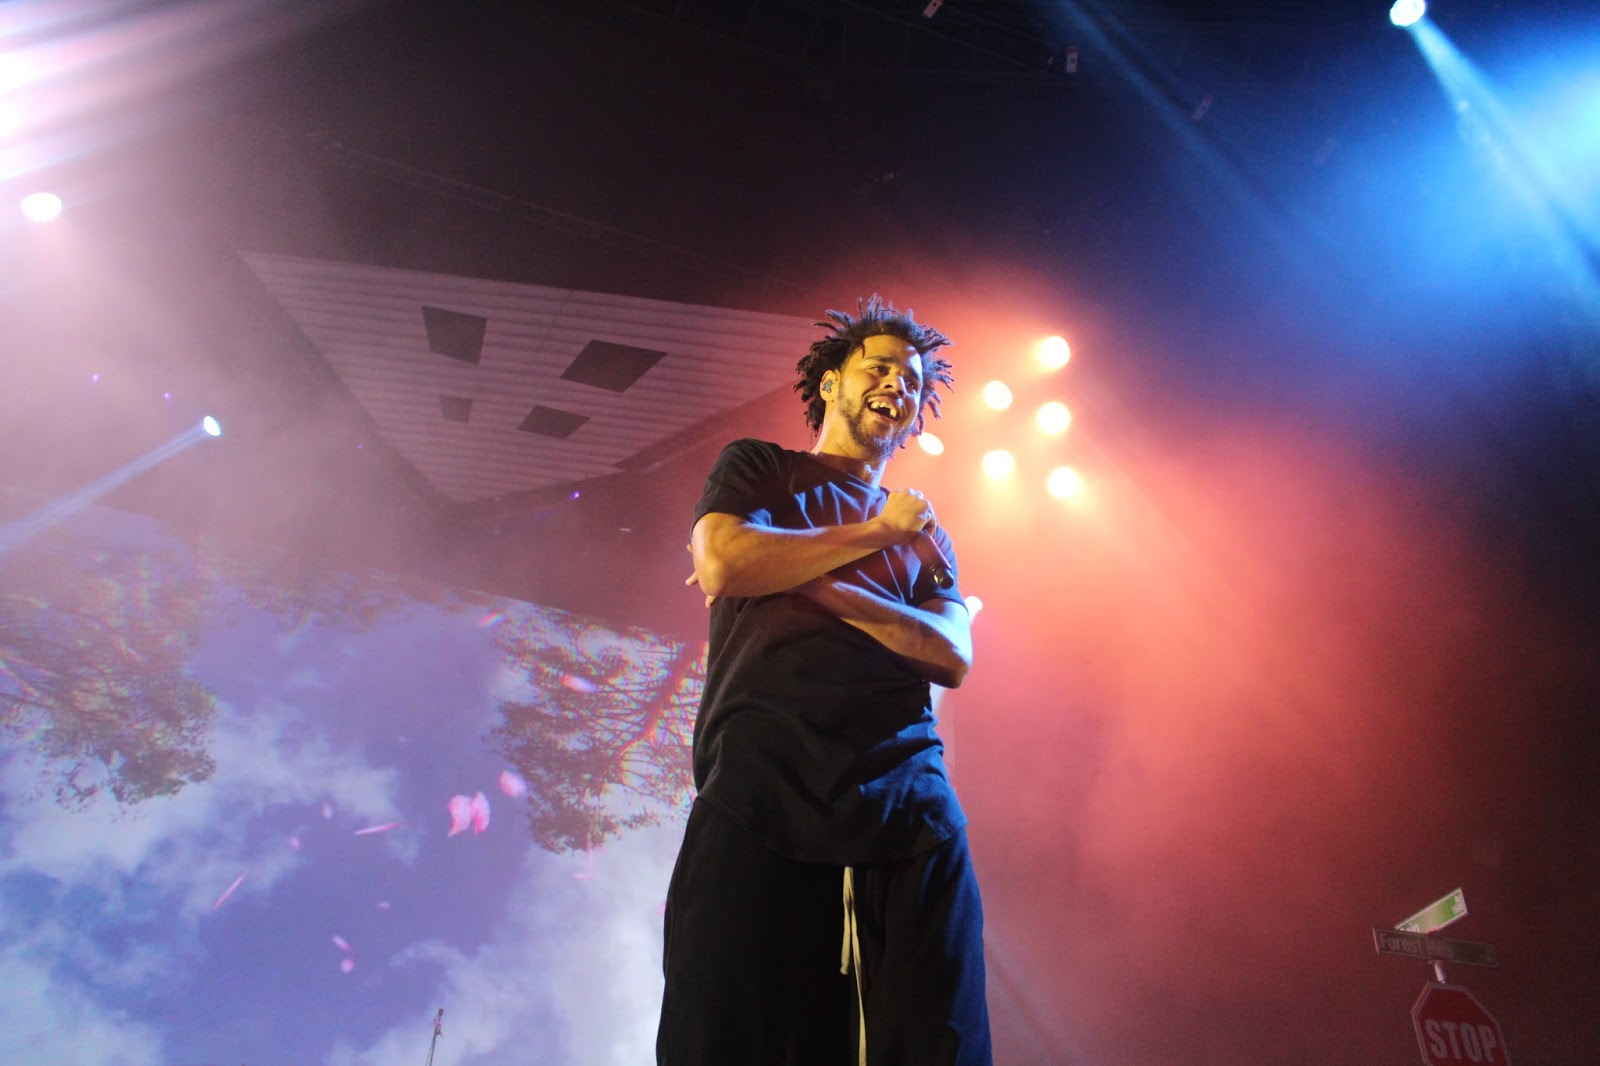 J. Cole Closed Out The Final Act Of His U0027Forest Hills Drive Touru0027 This  Weekend In His Hometown Fayetteville, NC. For The First Time, Cole  Performed To A ... Nice Design